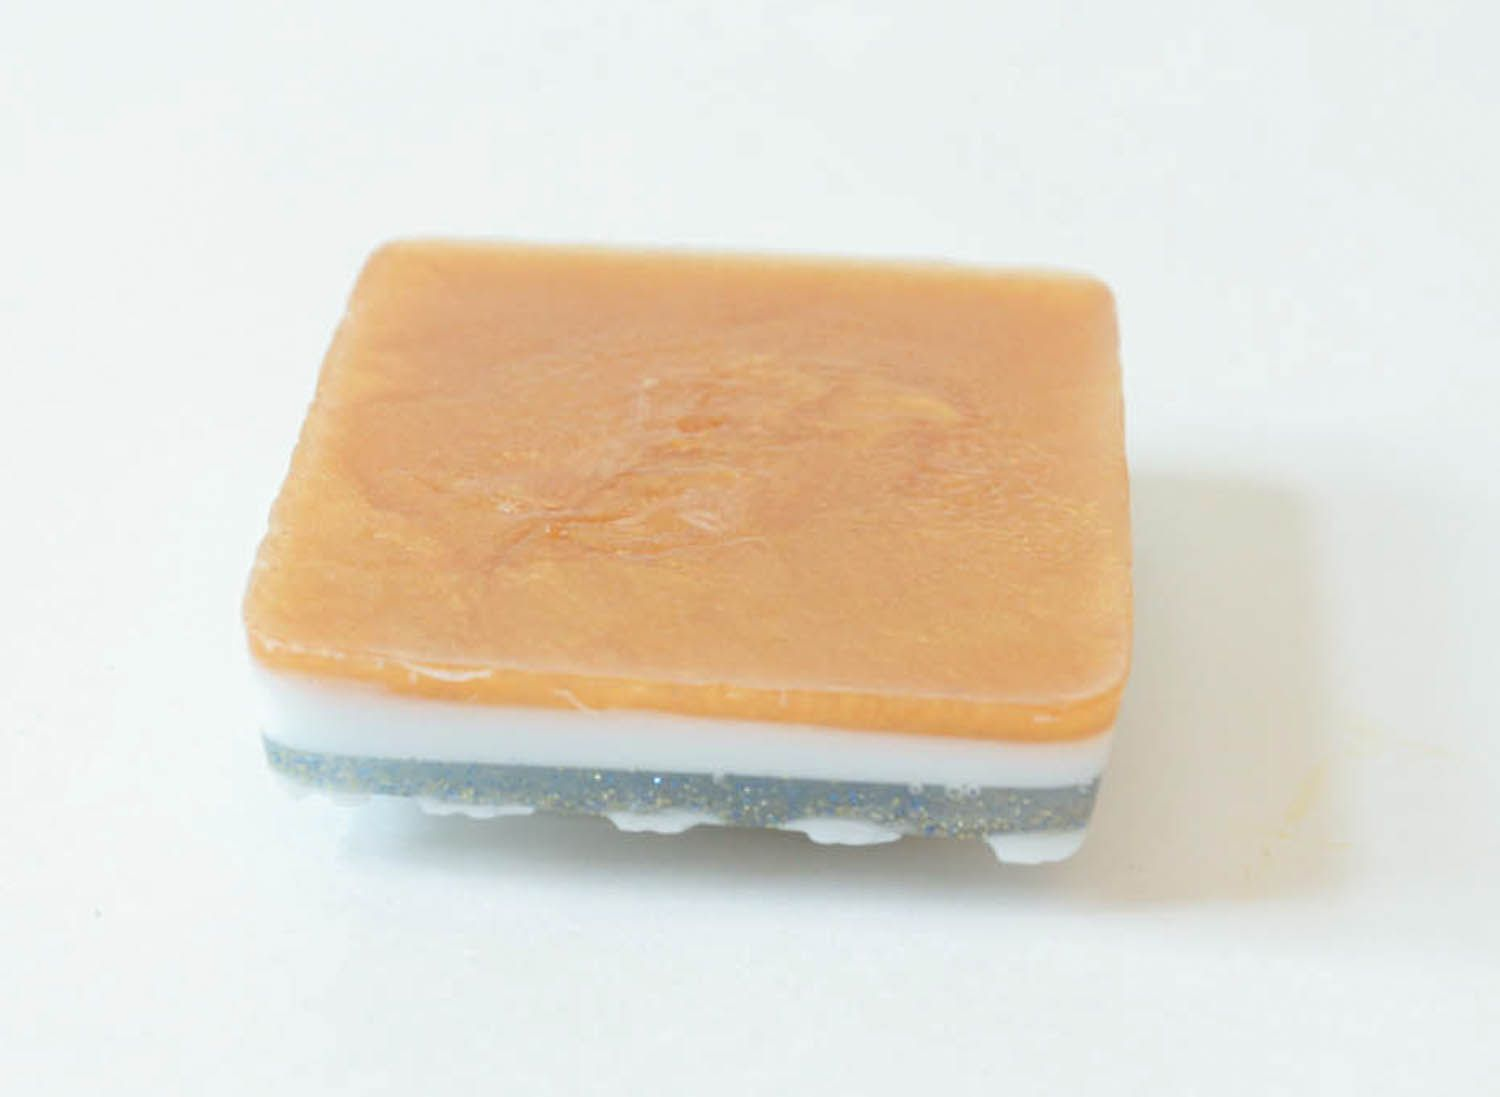 Gentle soap with natural oils photo 2